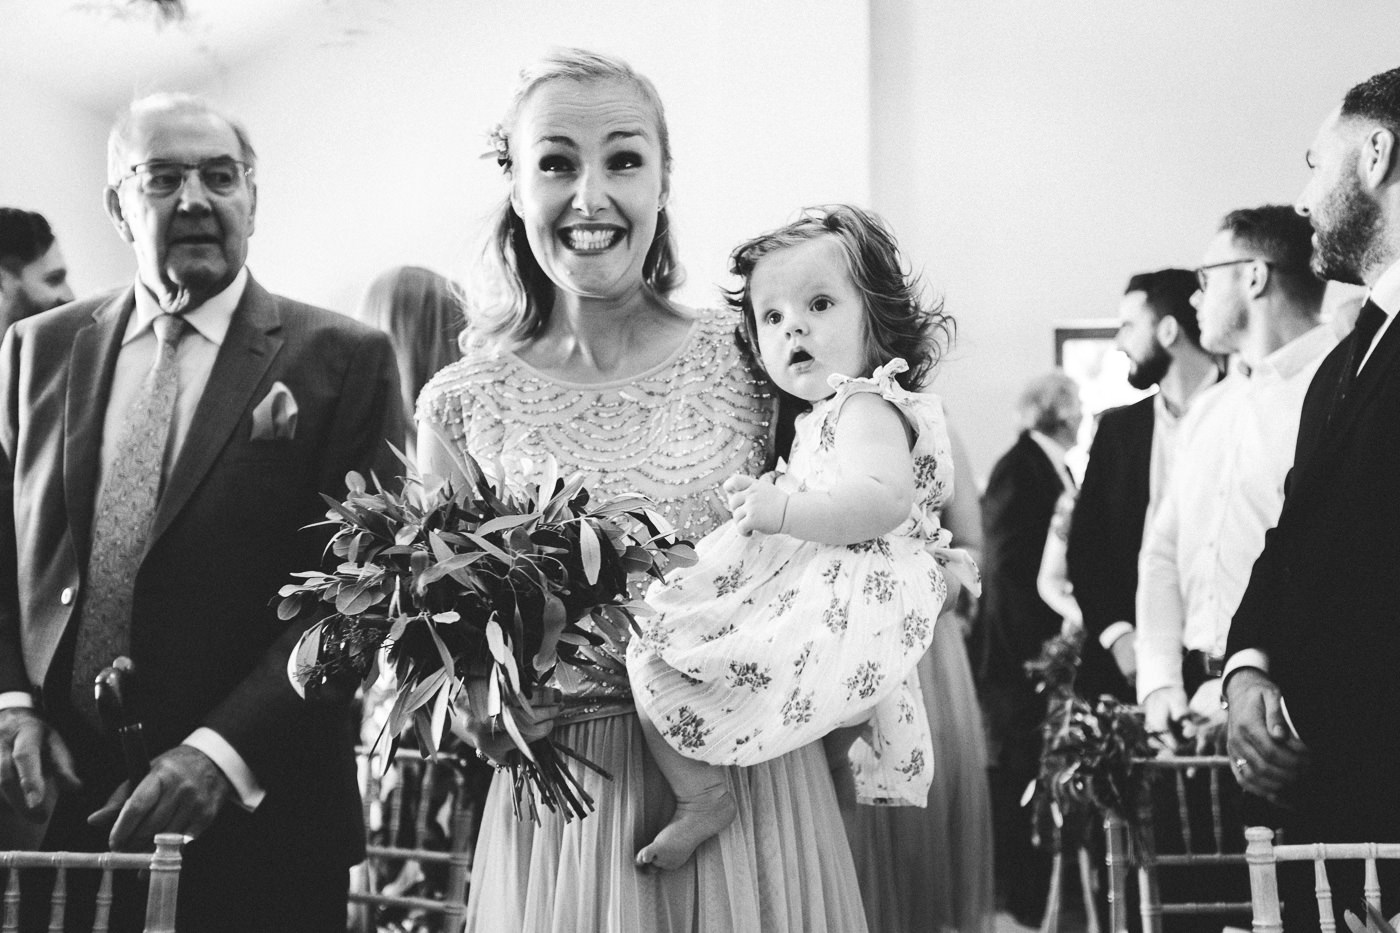 COWBRIDGE GLYNDWR VINEYARD WEDDING PHOTOGRAPHY CARDIFF SOUTH WALES 019